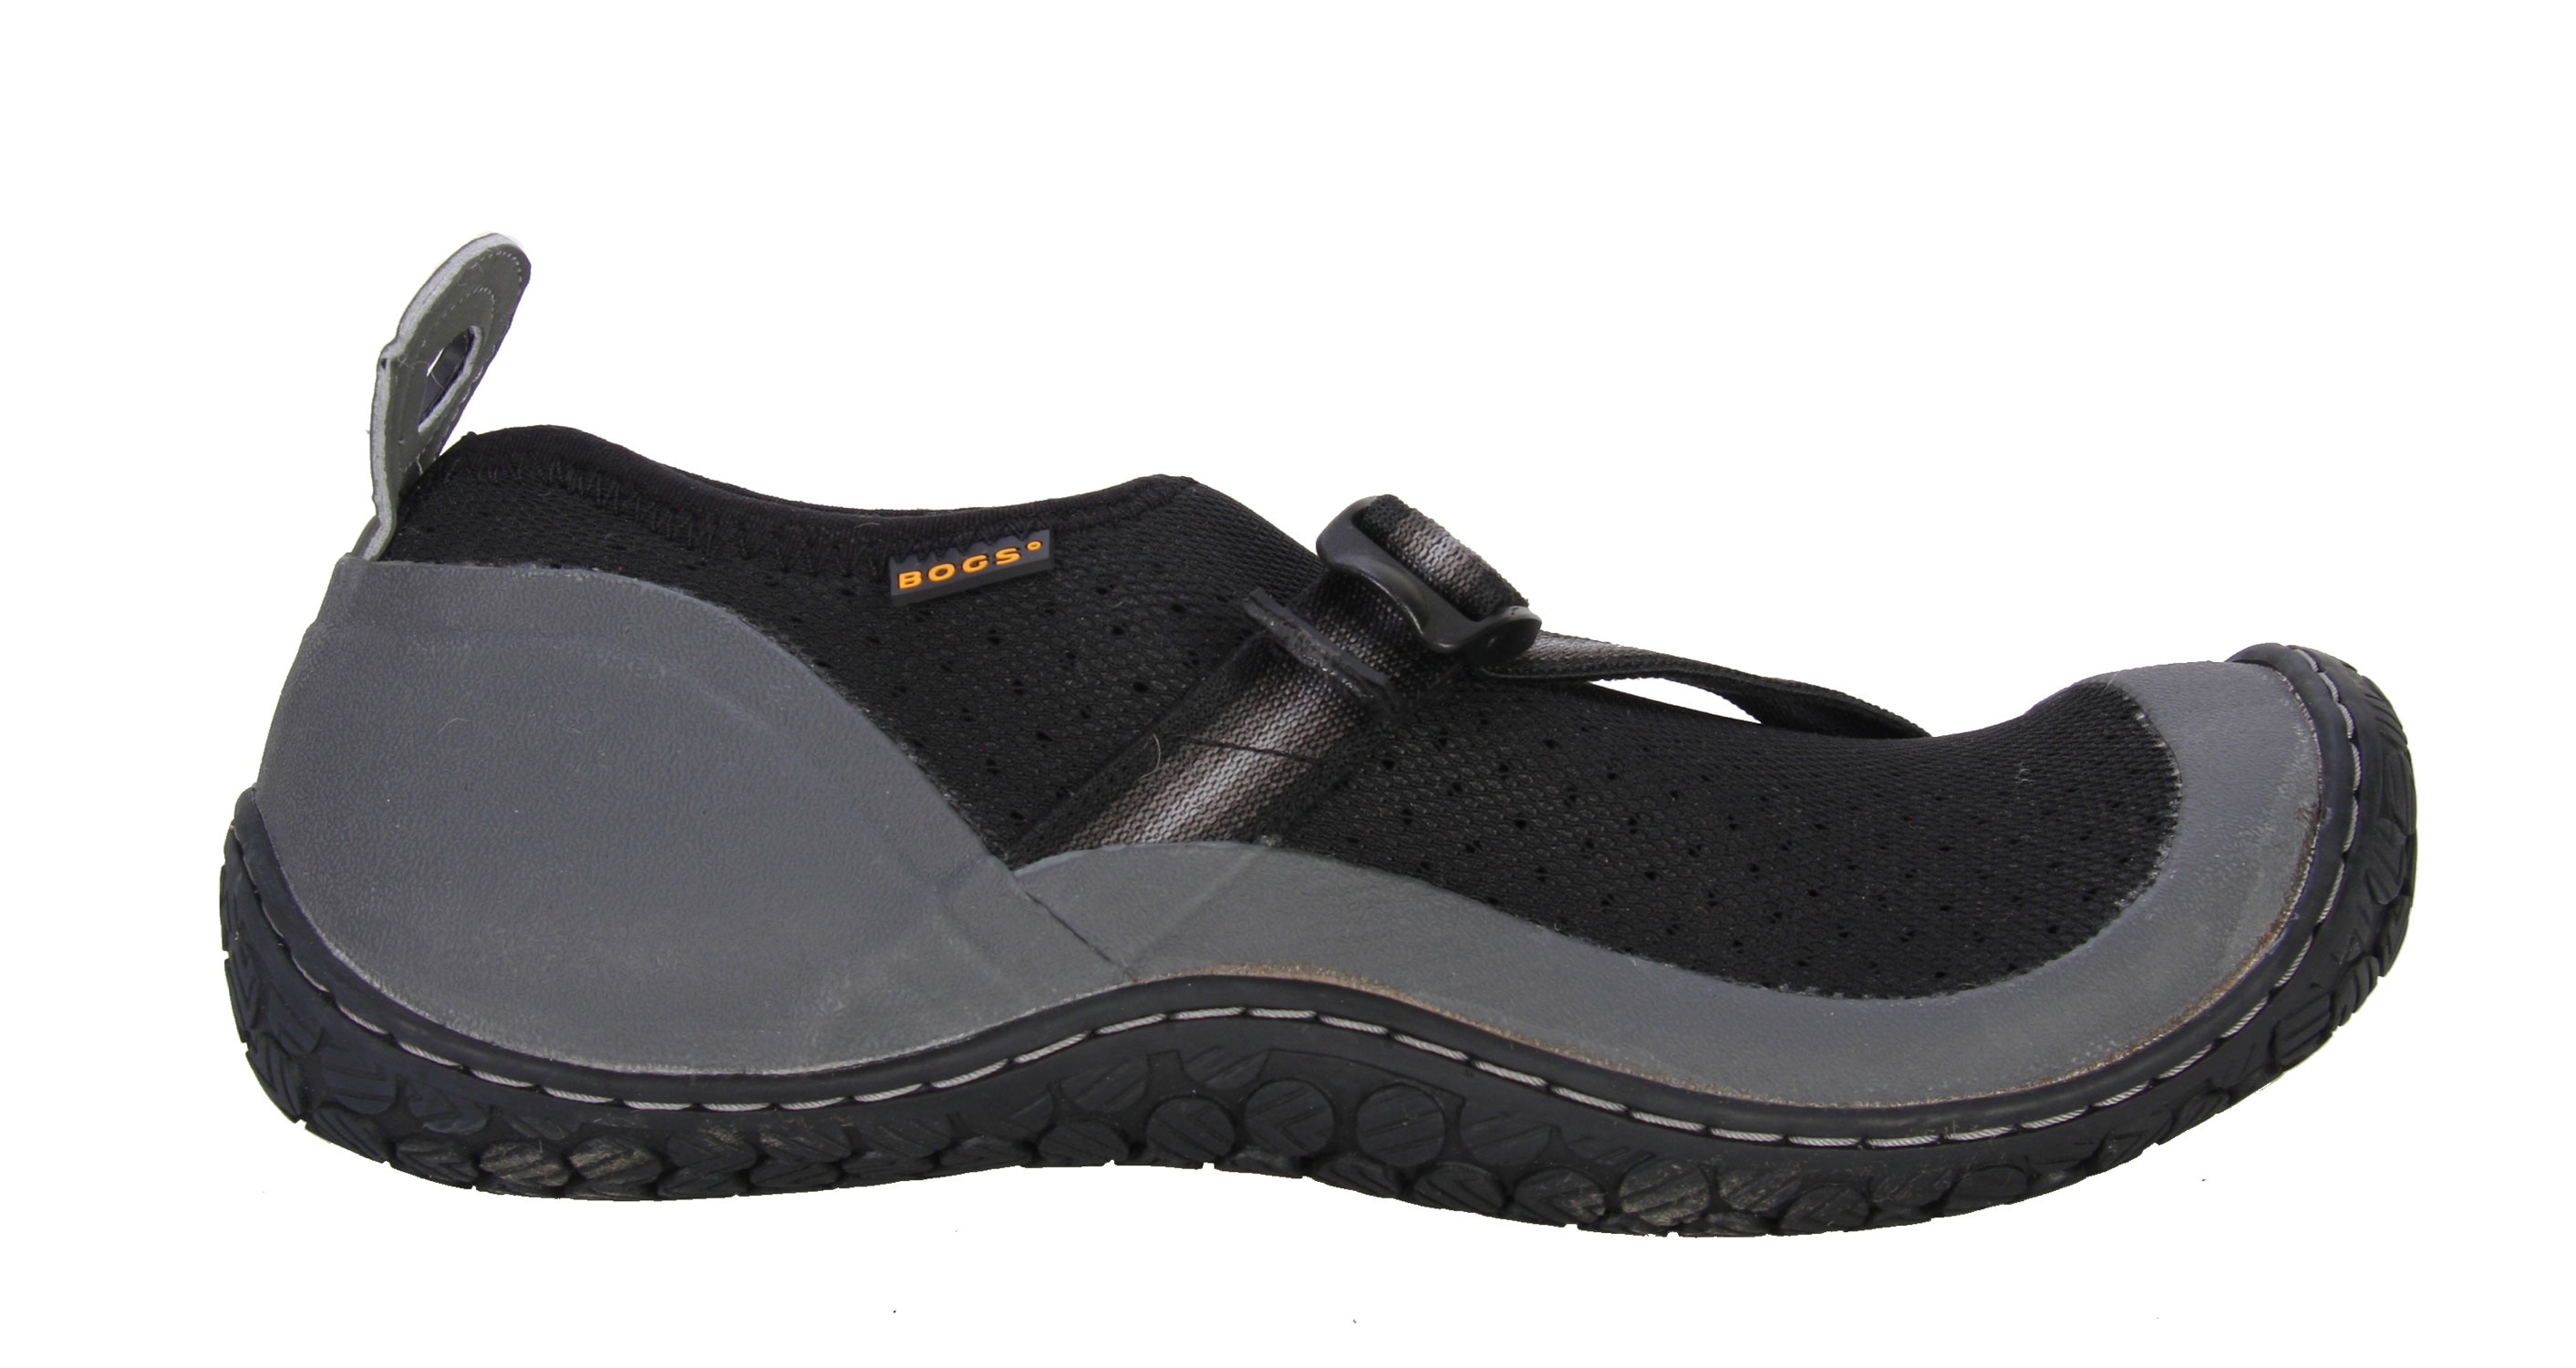 Hit all your water adventures sporting these fabulous Rafters Crosswater Low Water Shoes. Made with a four way stretch neoprene upper, internal midsole with drain holes and great grippy soles, these are the ultimate pair of water shoes to own this summer. Super comfortable and lightweight, it feels like walking barefooted. Treat yourself to this great pair and you won't regret it.Key Features of The Rafters Crosswater Low Water Shoes: Four Way Stretch Neoprene Upper Internal Midsole with Drain Holes Non Slip Sipe Self Draining Rubber Outsole - $29.95